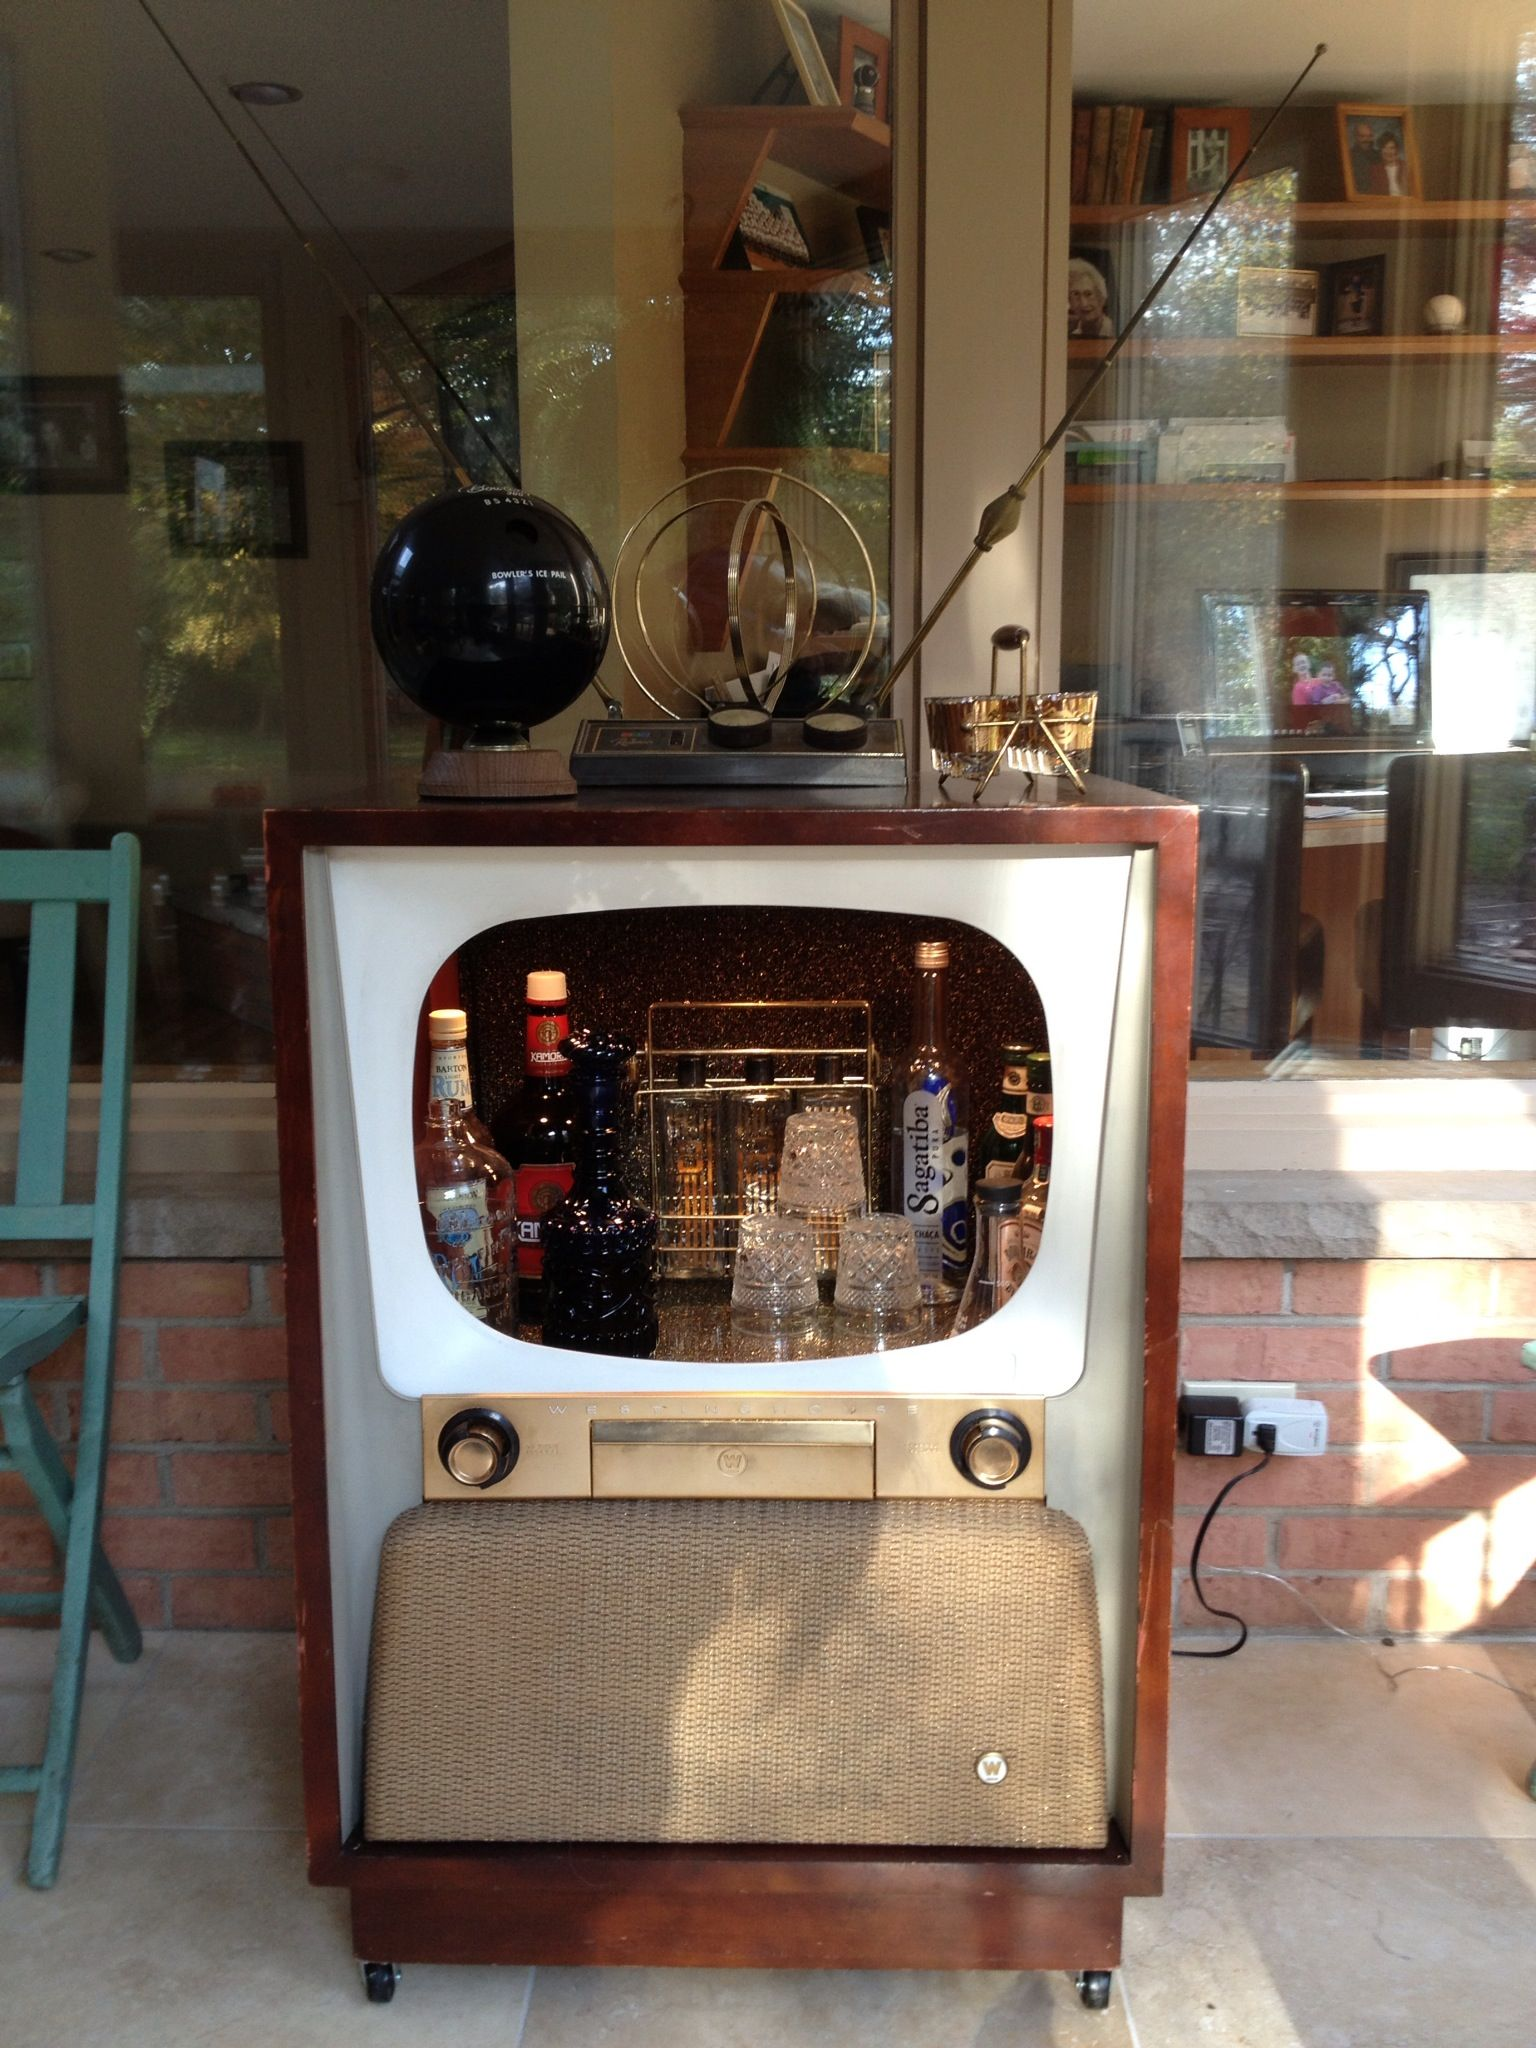 Merveilleux Retro Mini Bar. I Was Thinking G Trailer, But Would Be Super Cool